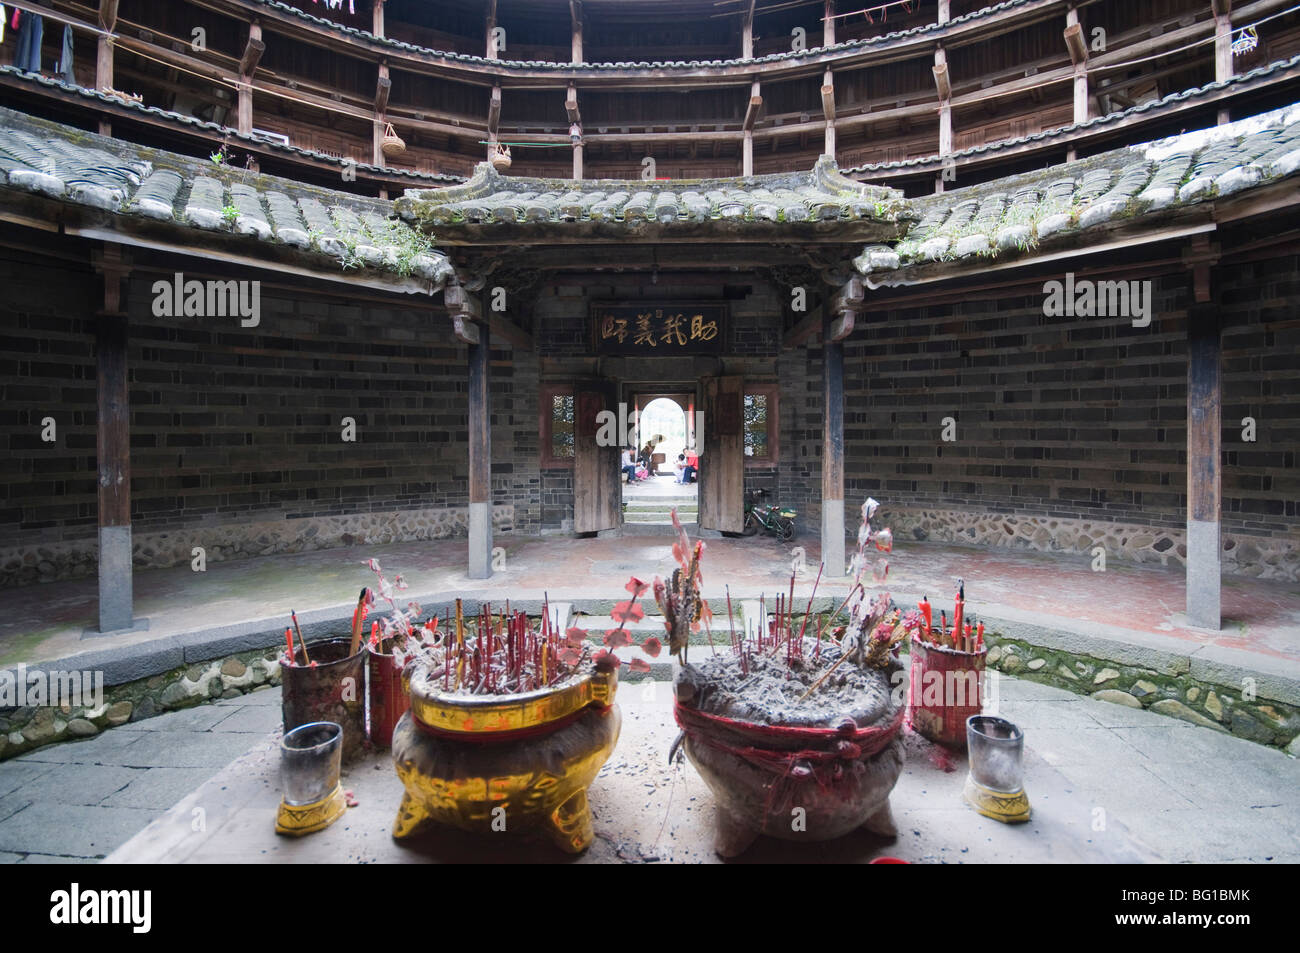 A shrine in a Hakka Tulou round earth building, UNESCO World Heritage Site, Fujian Province, China, Asia - Stock Image